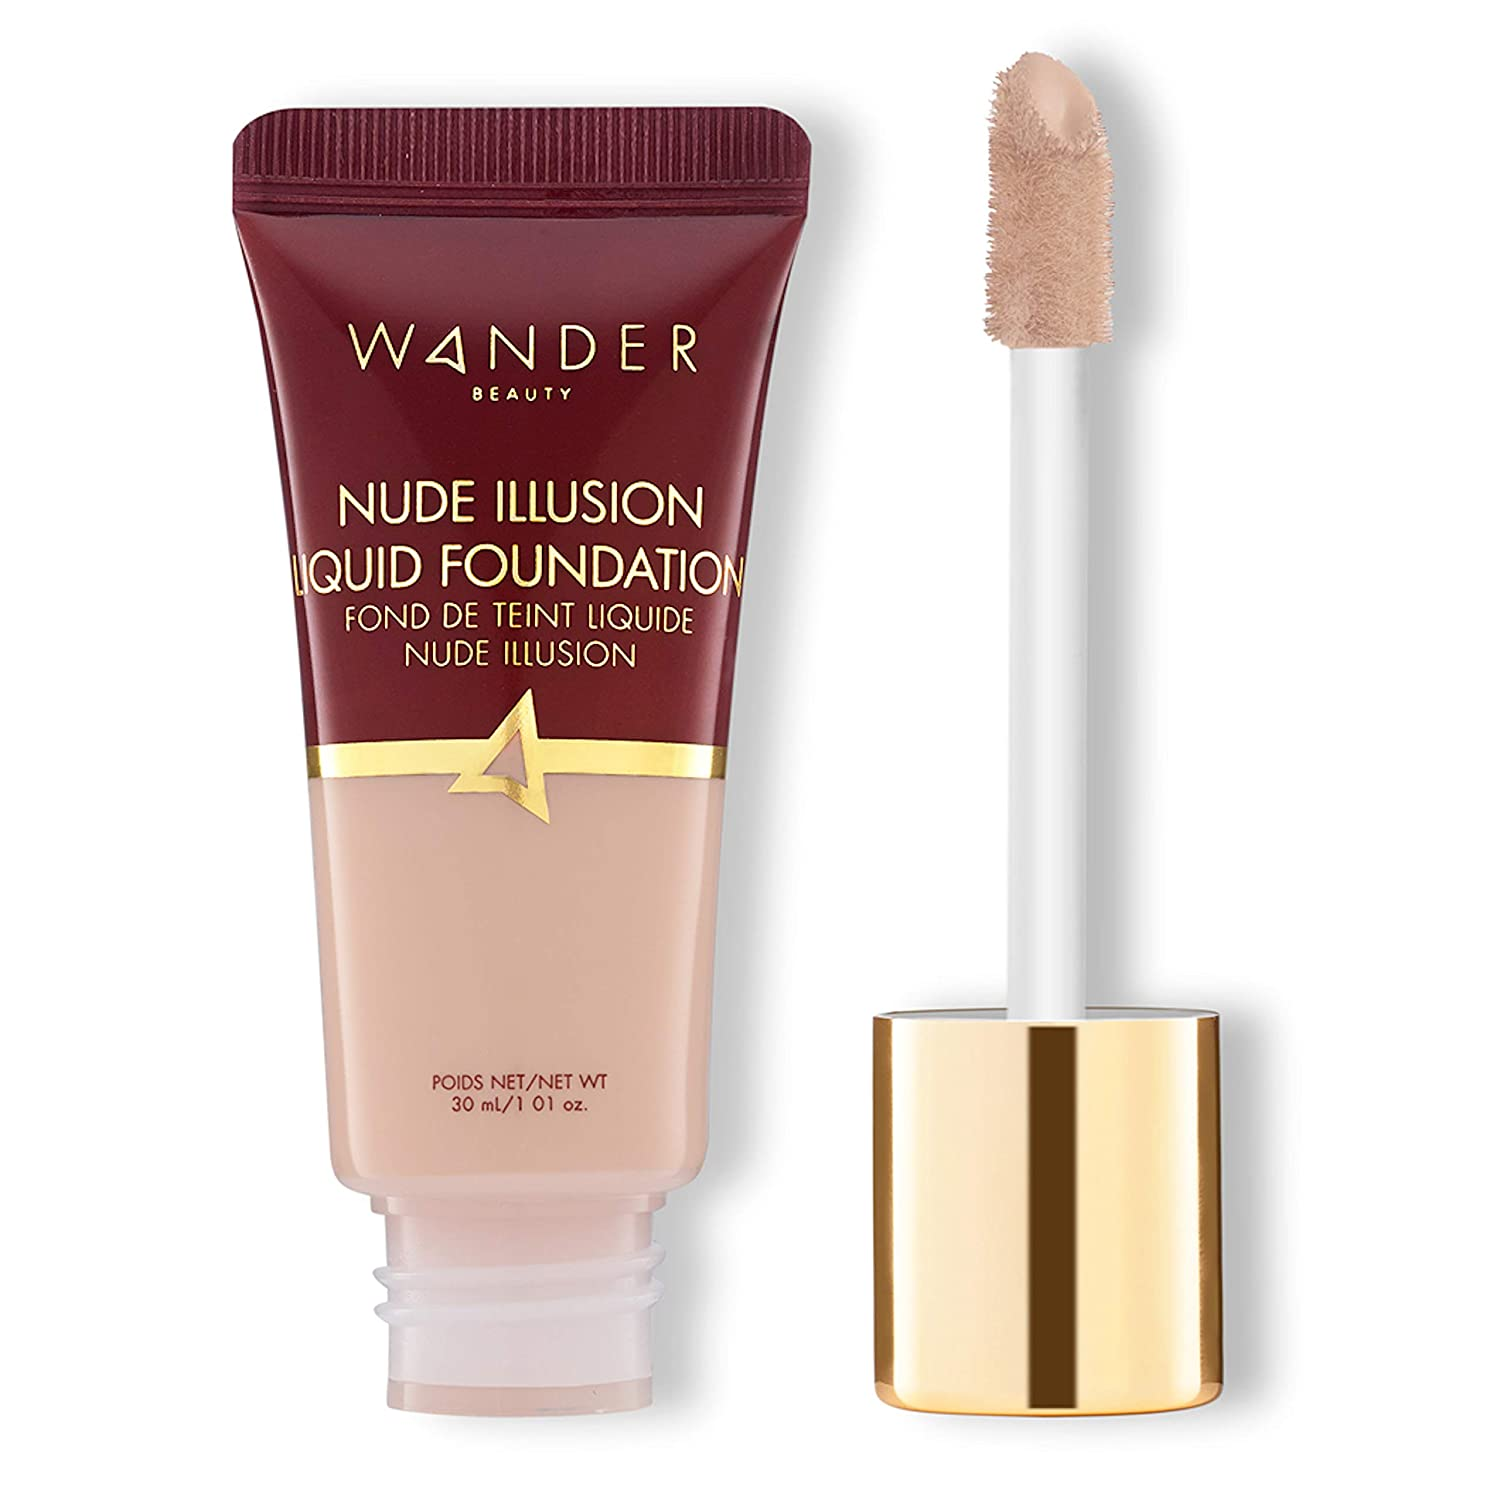 Wander Beauty Nude Illusion Liquid Foundation - Fair - Buildable natural, radiant finish. Targeted spot correcting and concealing, covers blemishes, redness and discoloration.